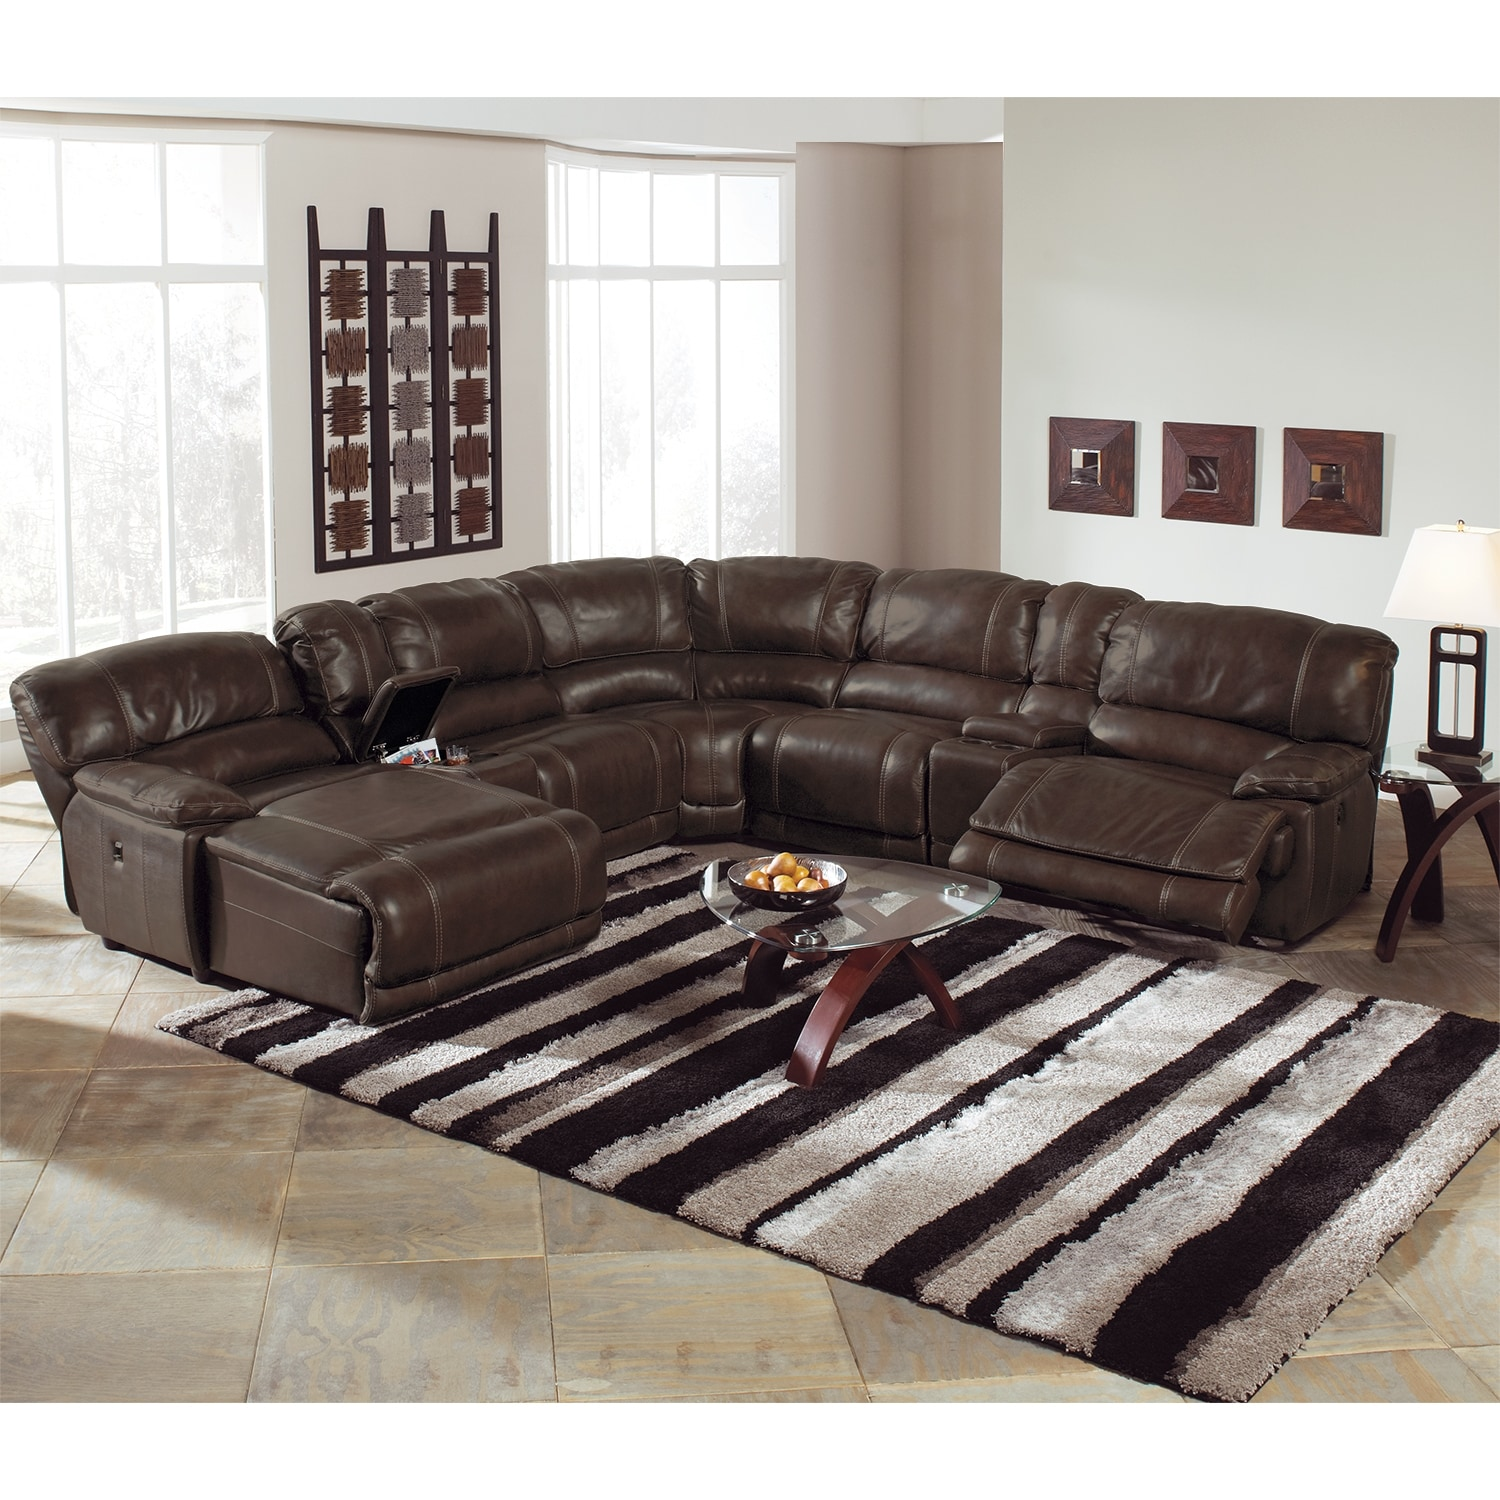 St Malo 6 Piece Left Facing Power Reclining Sectional